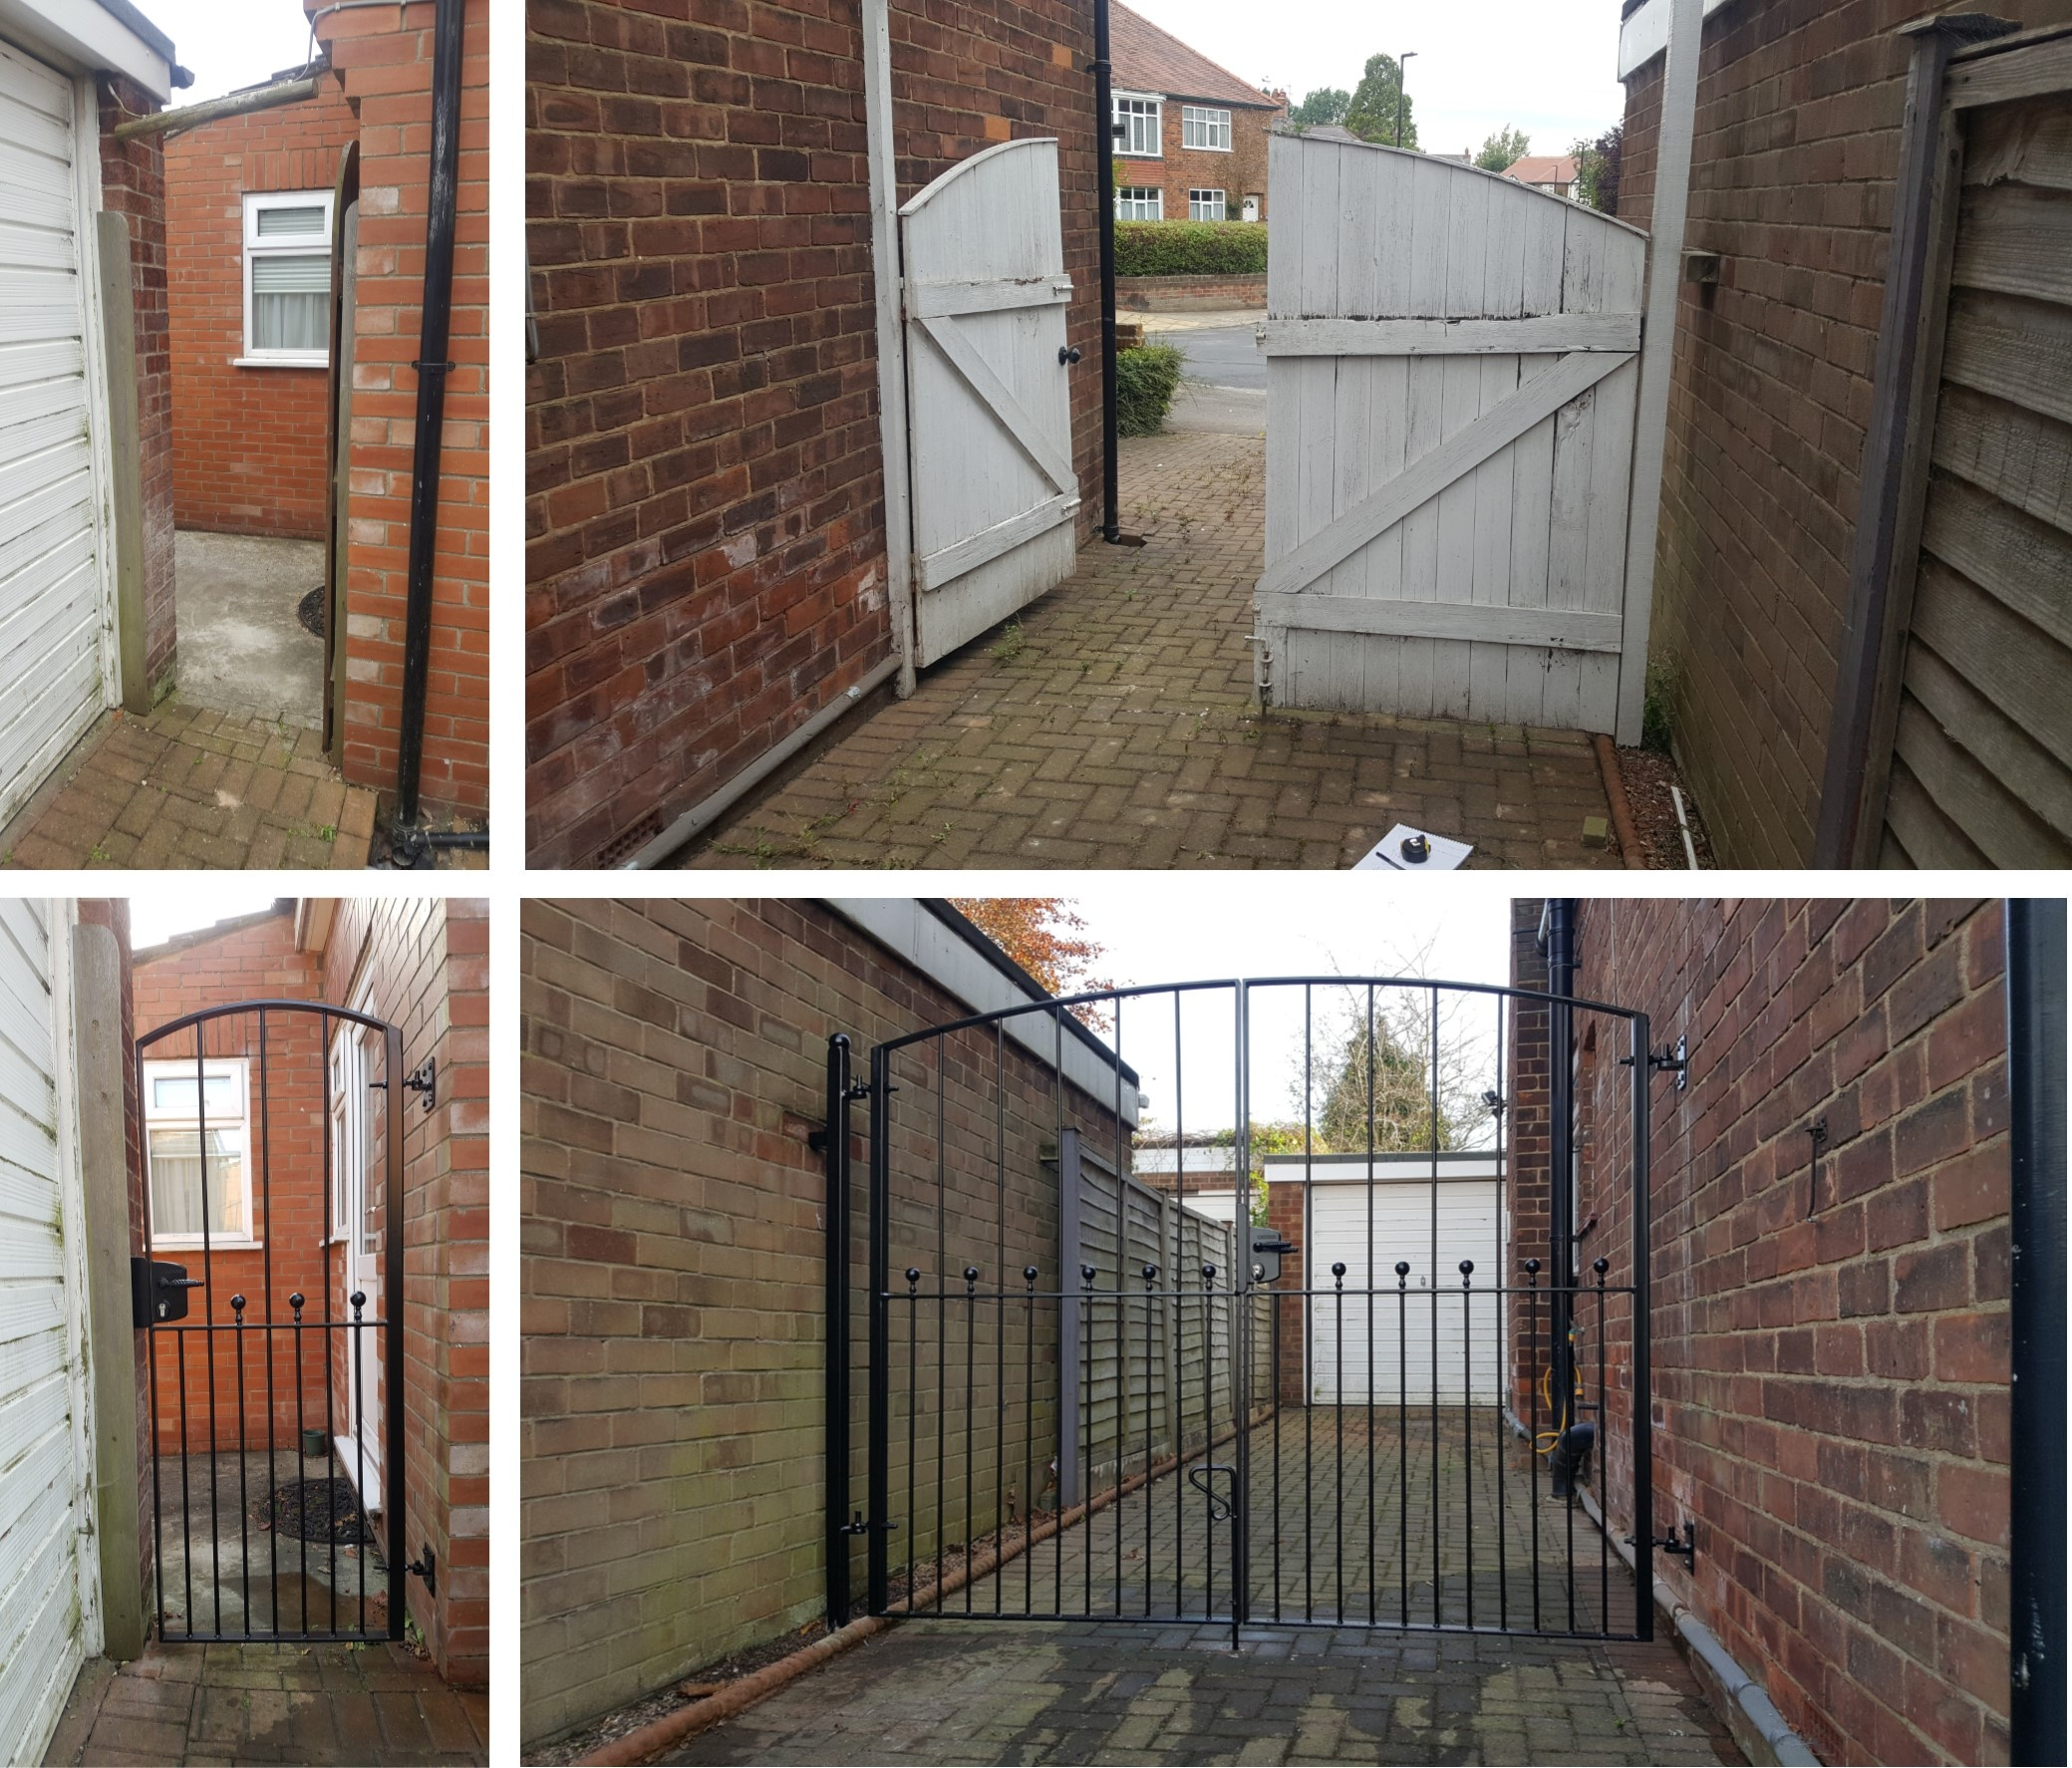 Smart new gates to replace existing wooden ones. Black satin powder coated finish.